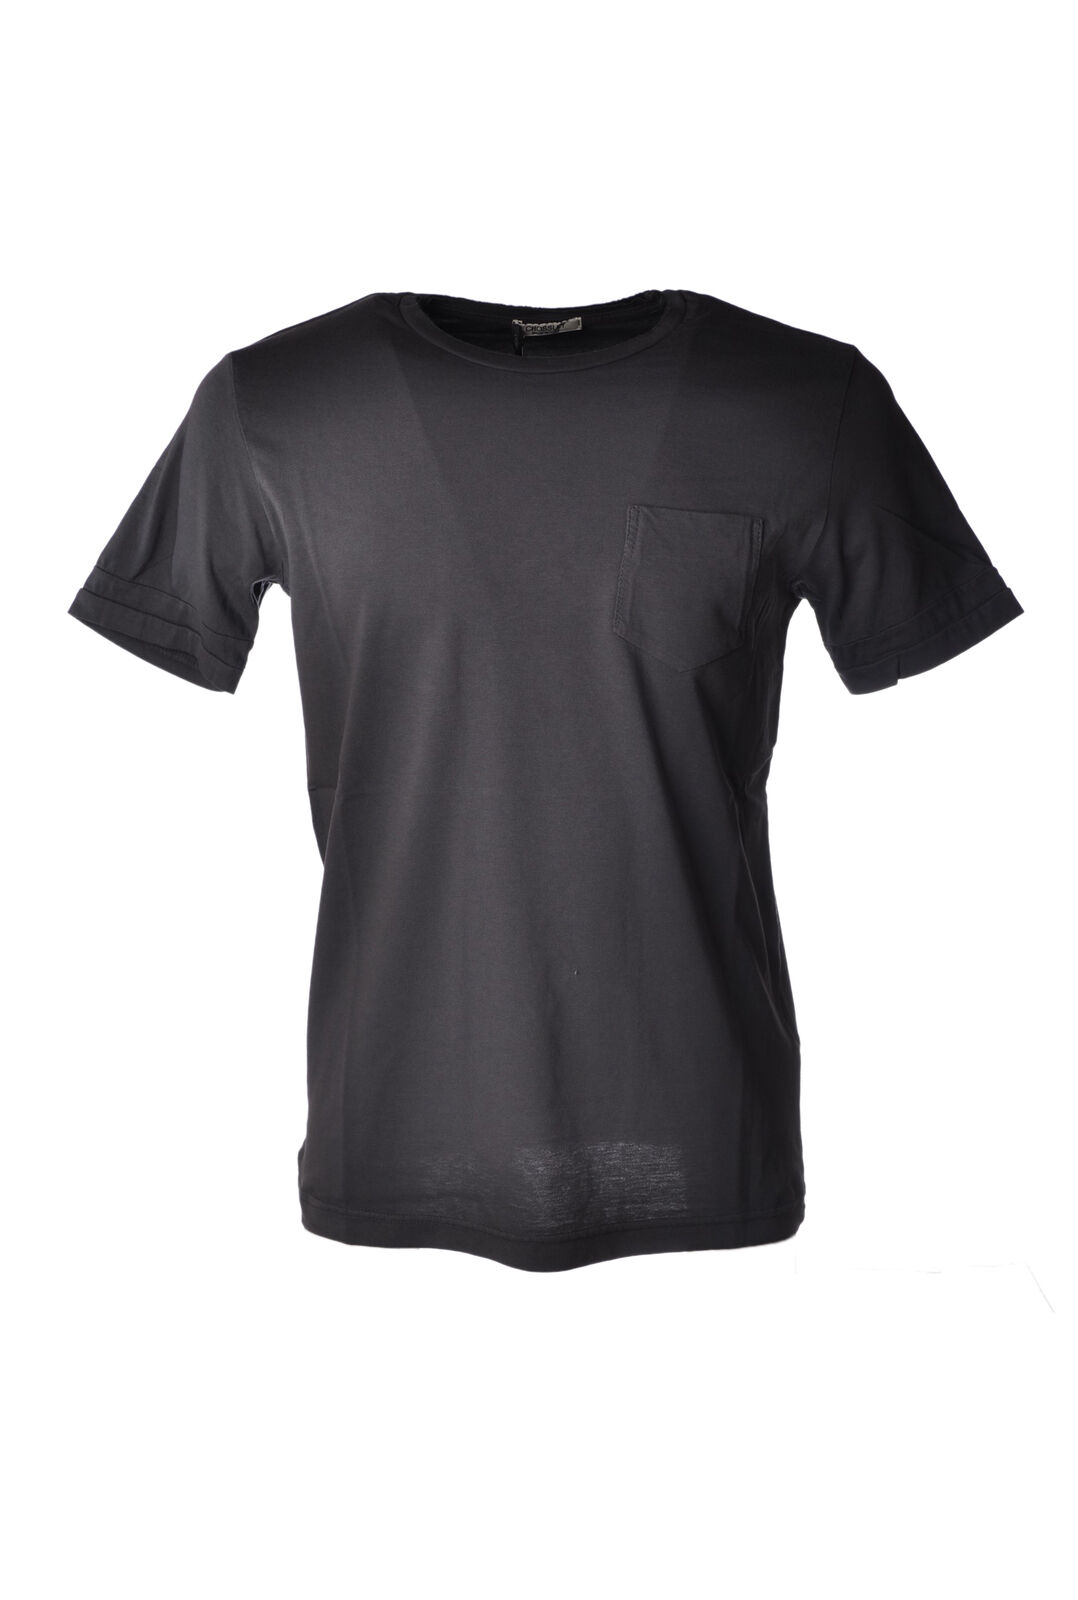 CROSSLEY - Topwear-T-shirts - Man - Grau - 5020517G183640